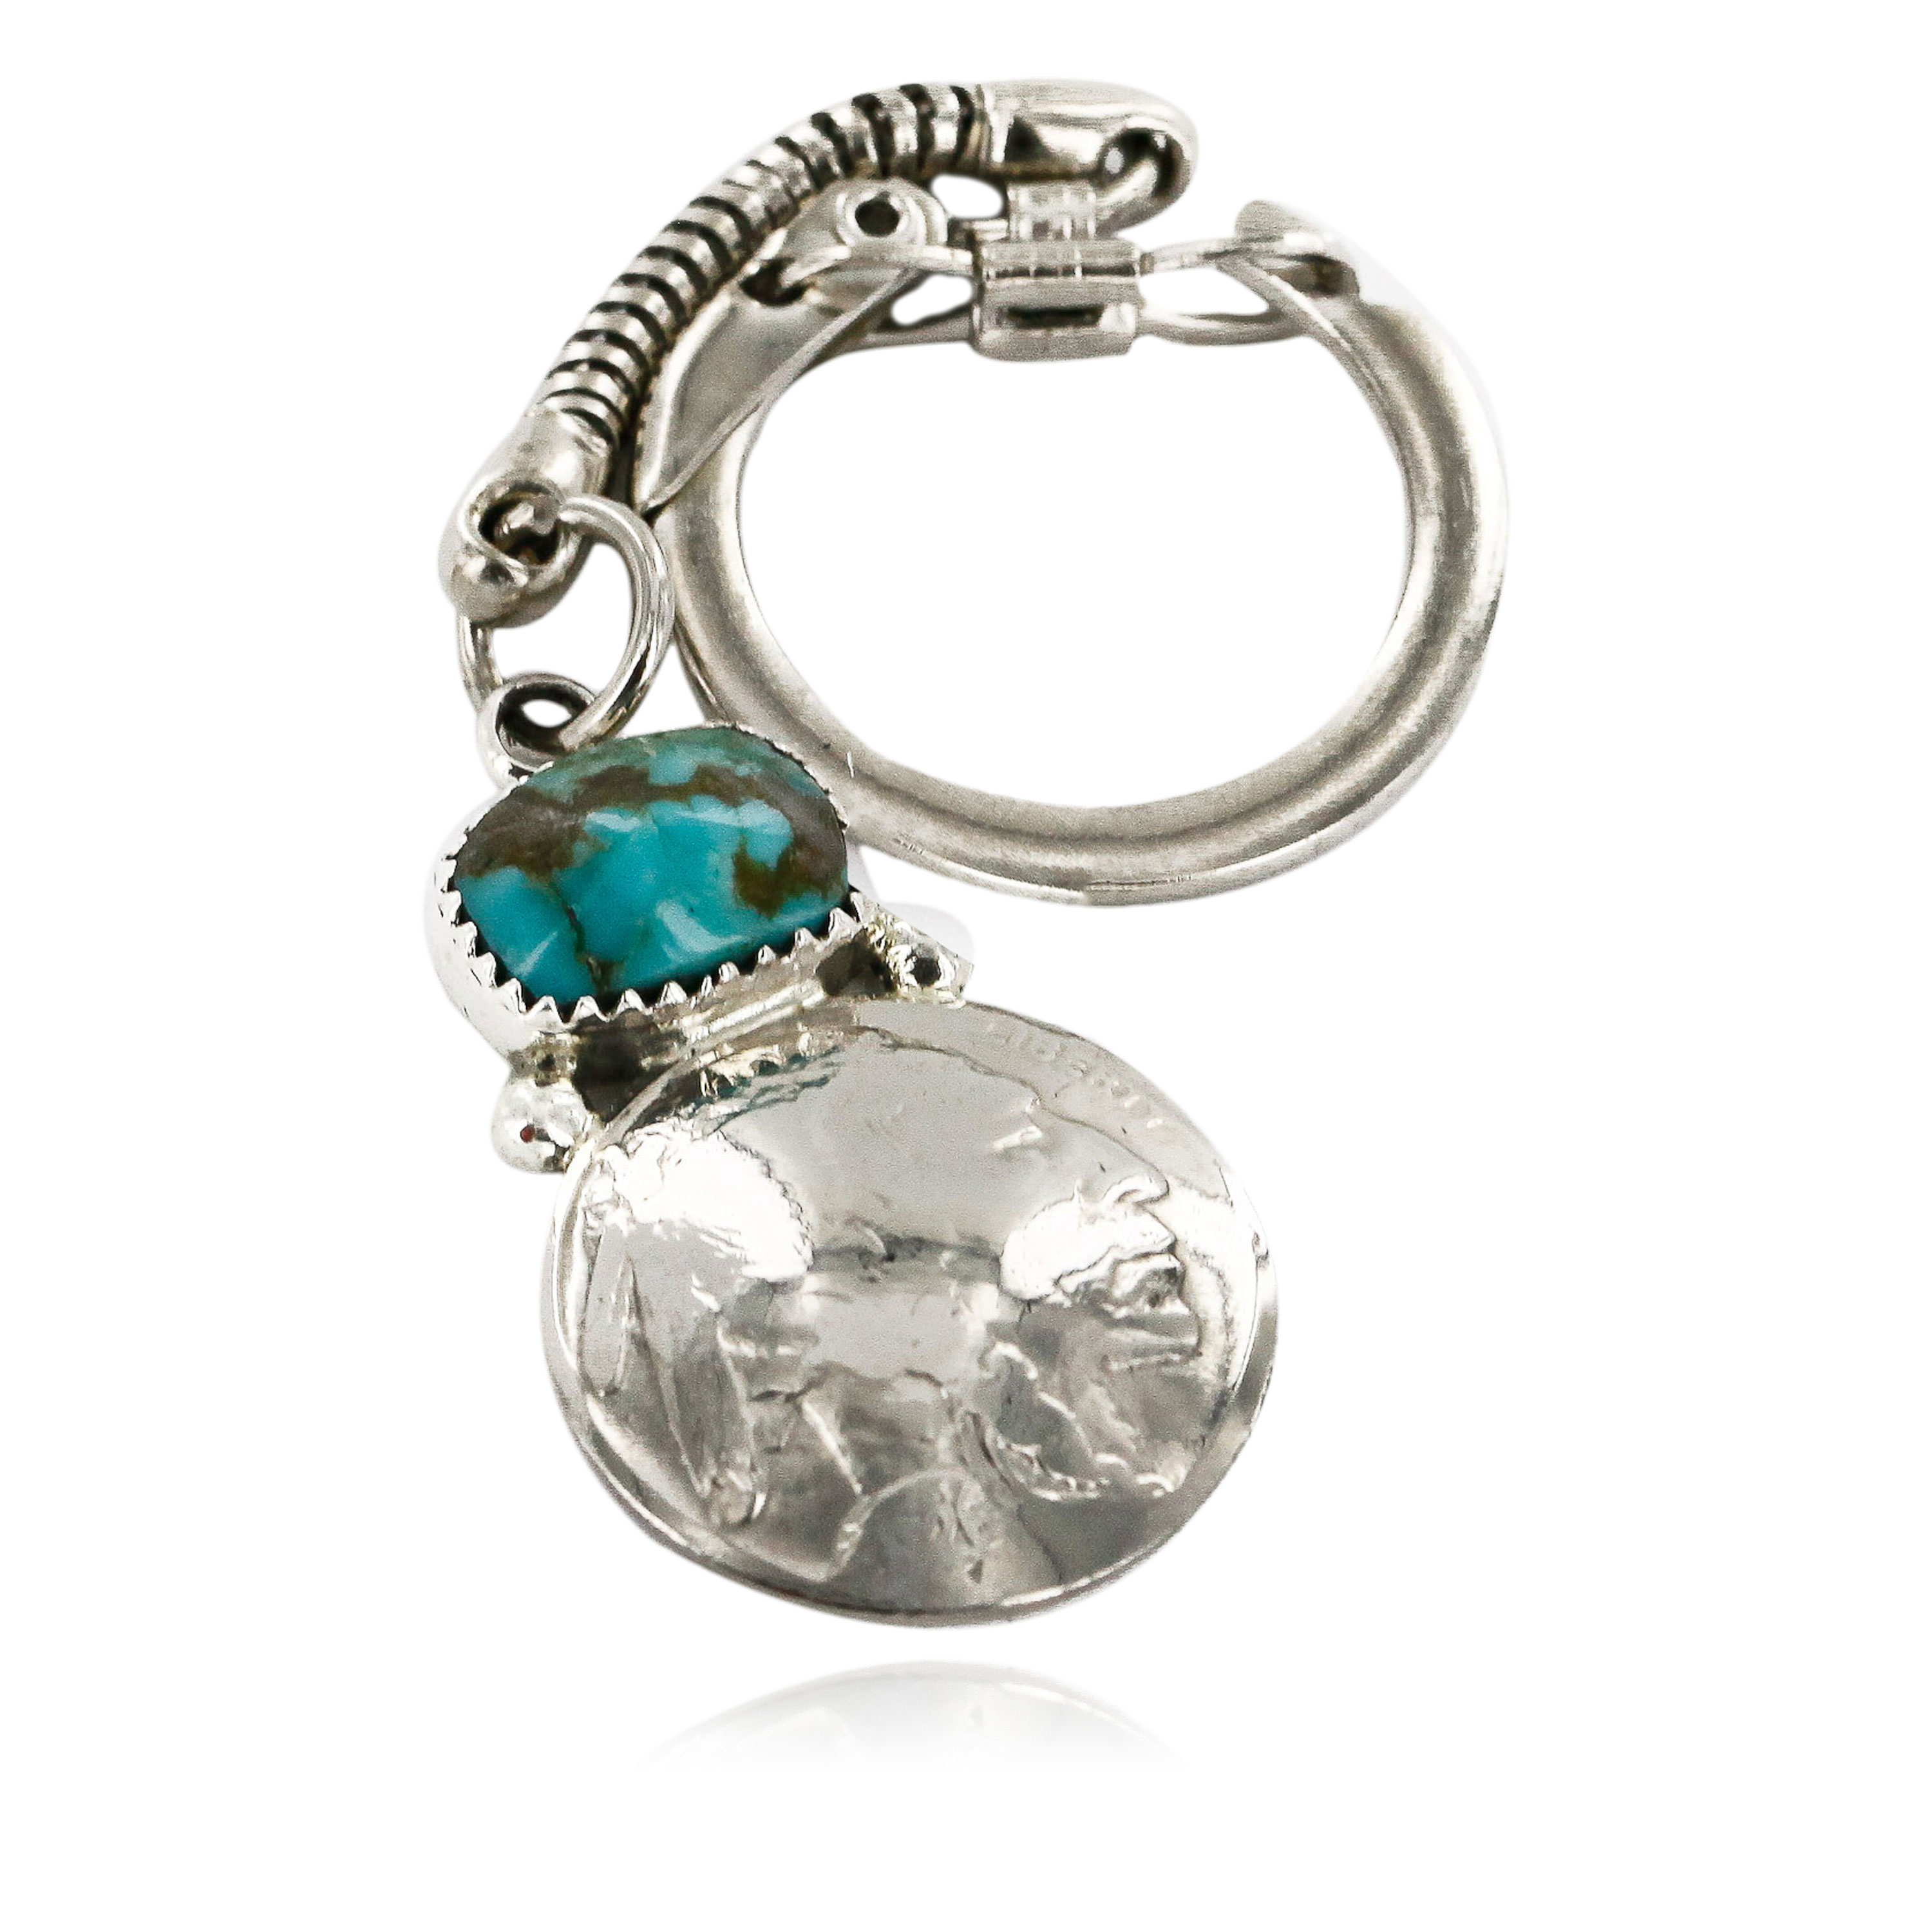 Vintage Style OLD Buffalo Coin Certified Authentic Navajo .925 Sterling Silver Natural Turquoise Native American Keychain 1 10336-1 All Products 10336-1 10336-1 (by LomaSiiva)